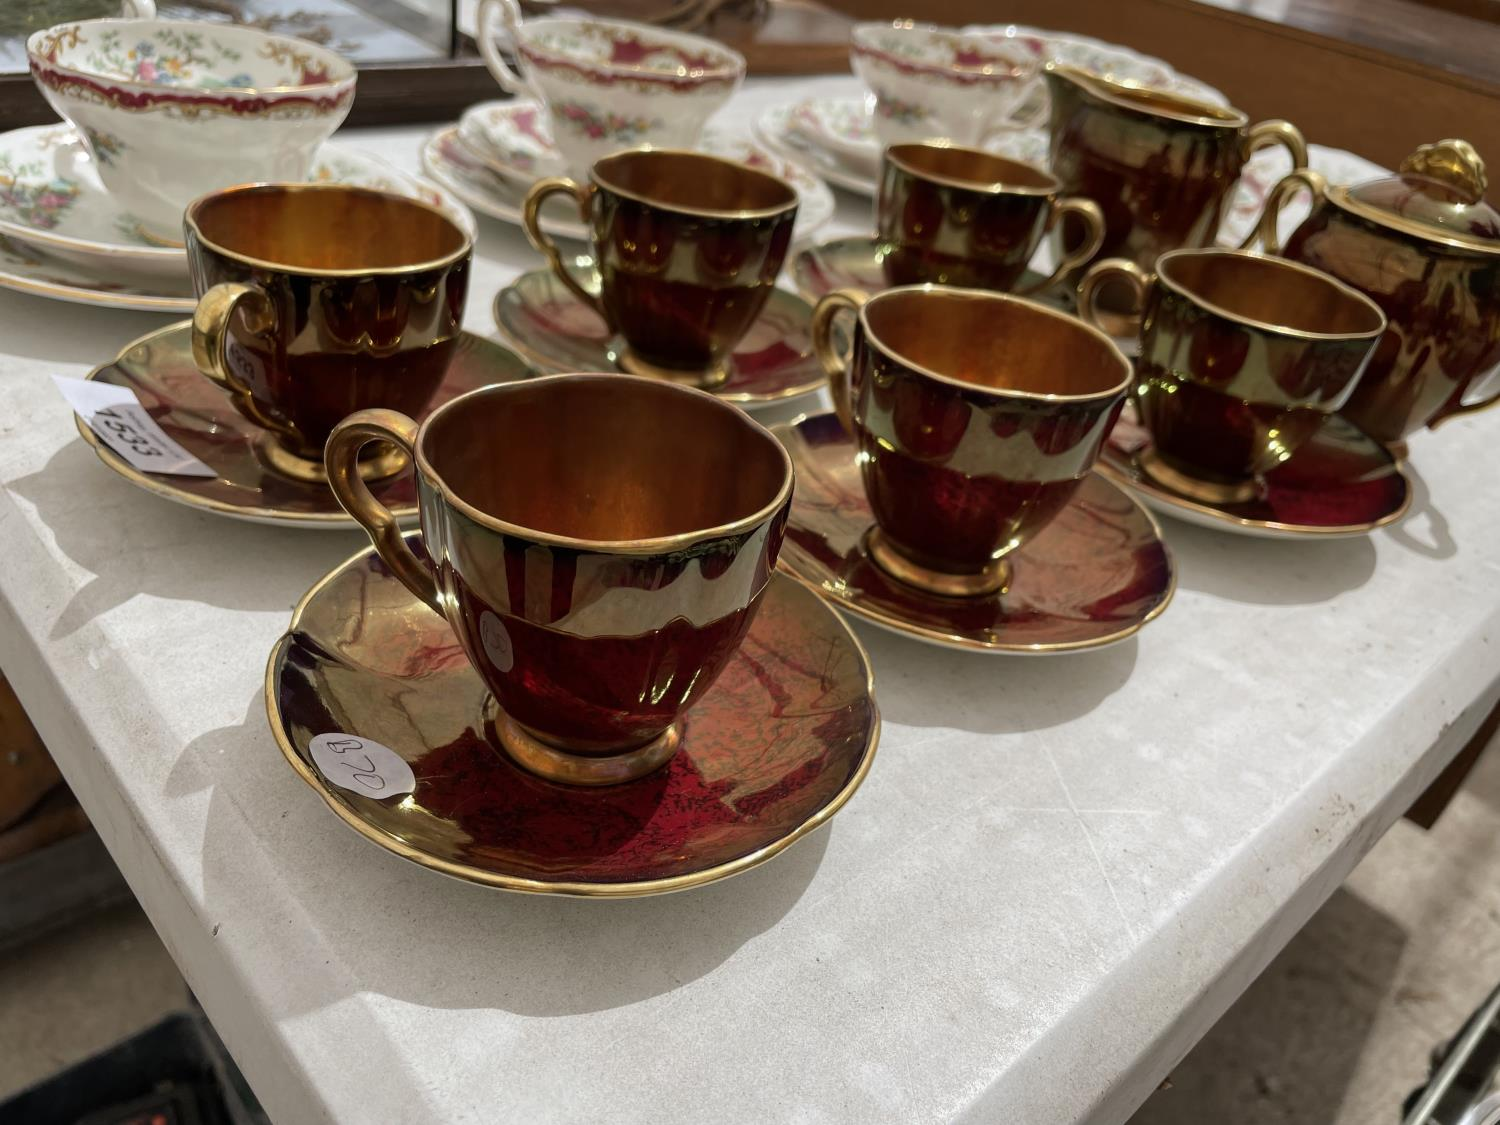 AN ASSORTMENT OF CERAMIC WARE TO INCLUDE A CARLTON WARE COFFEE SERVICE SET AND FLORAL TRIOS ETC - Image 4 of 10